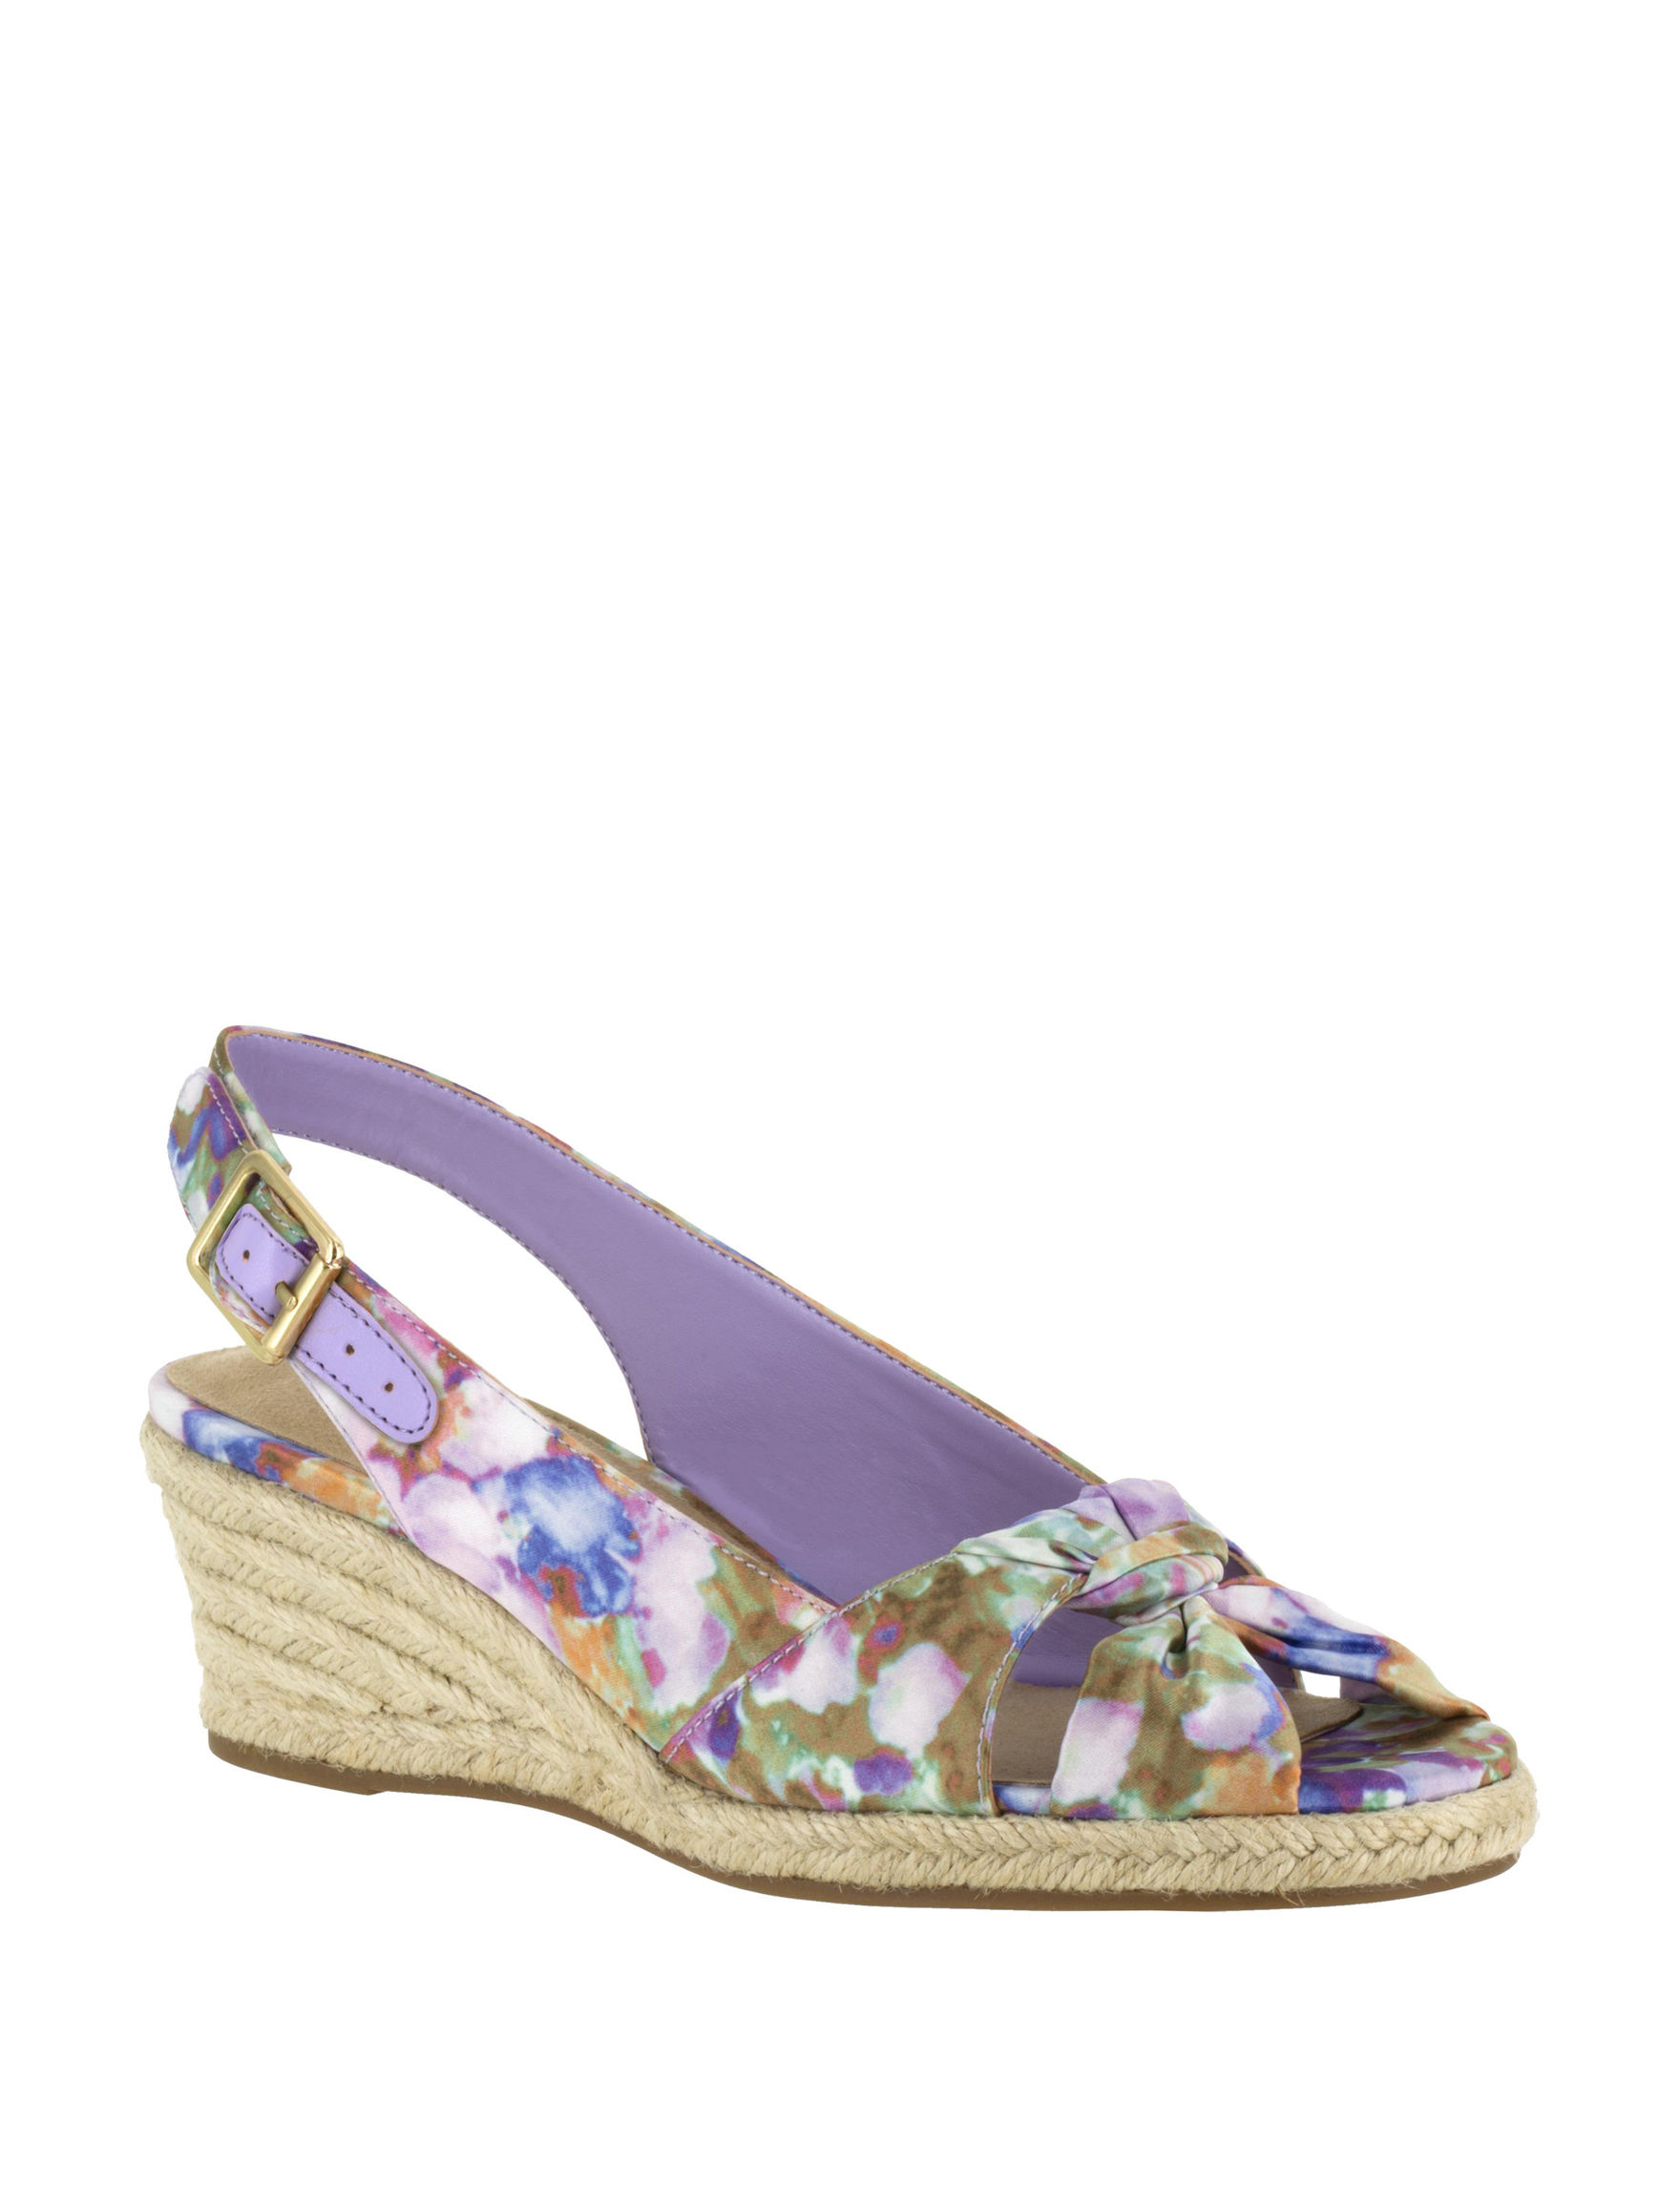 Bella Vita Purple Floral Wedge Sandals